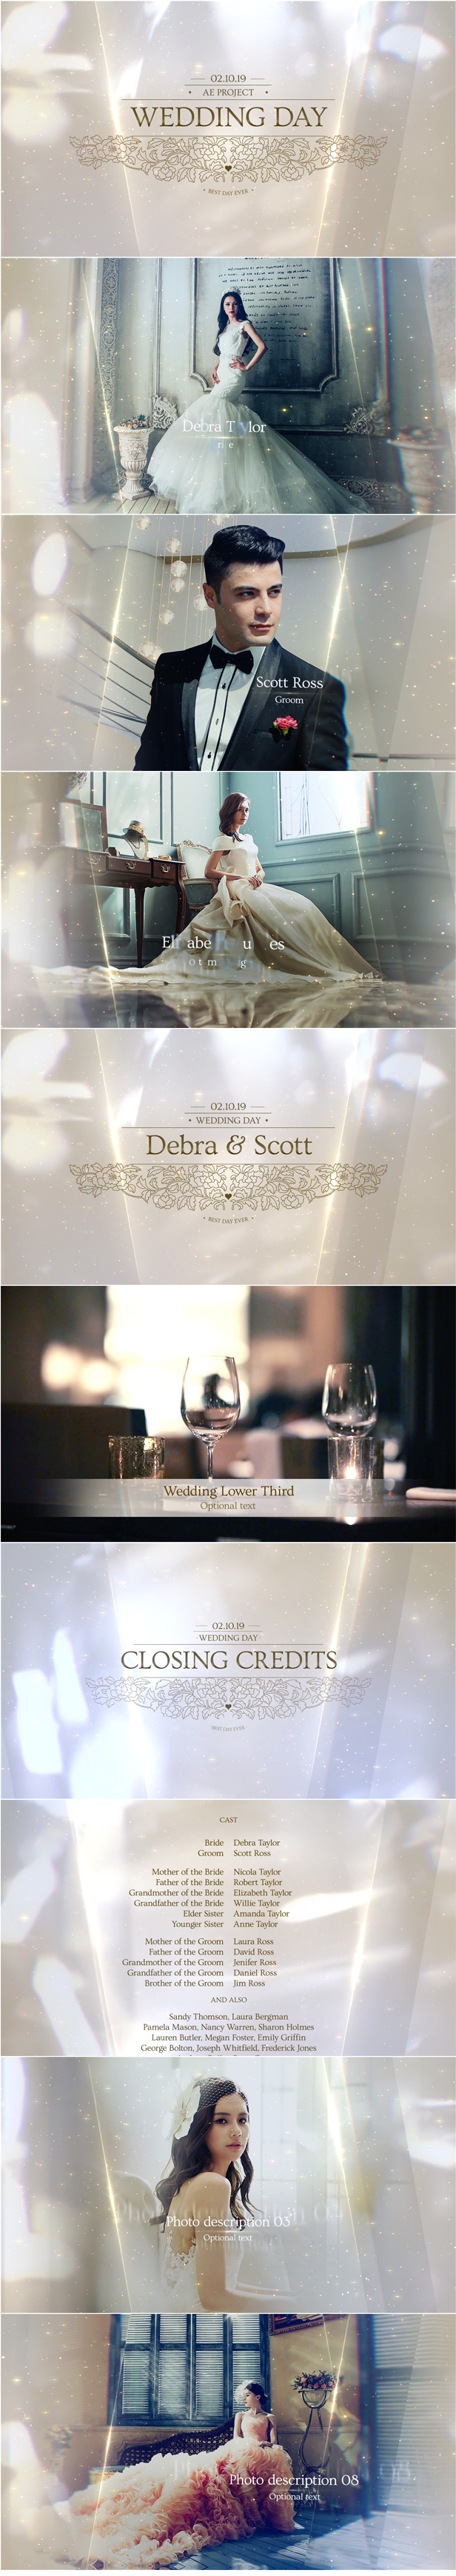 Wedding Pack After Effects AE Template